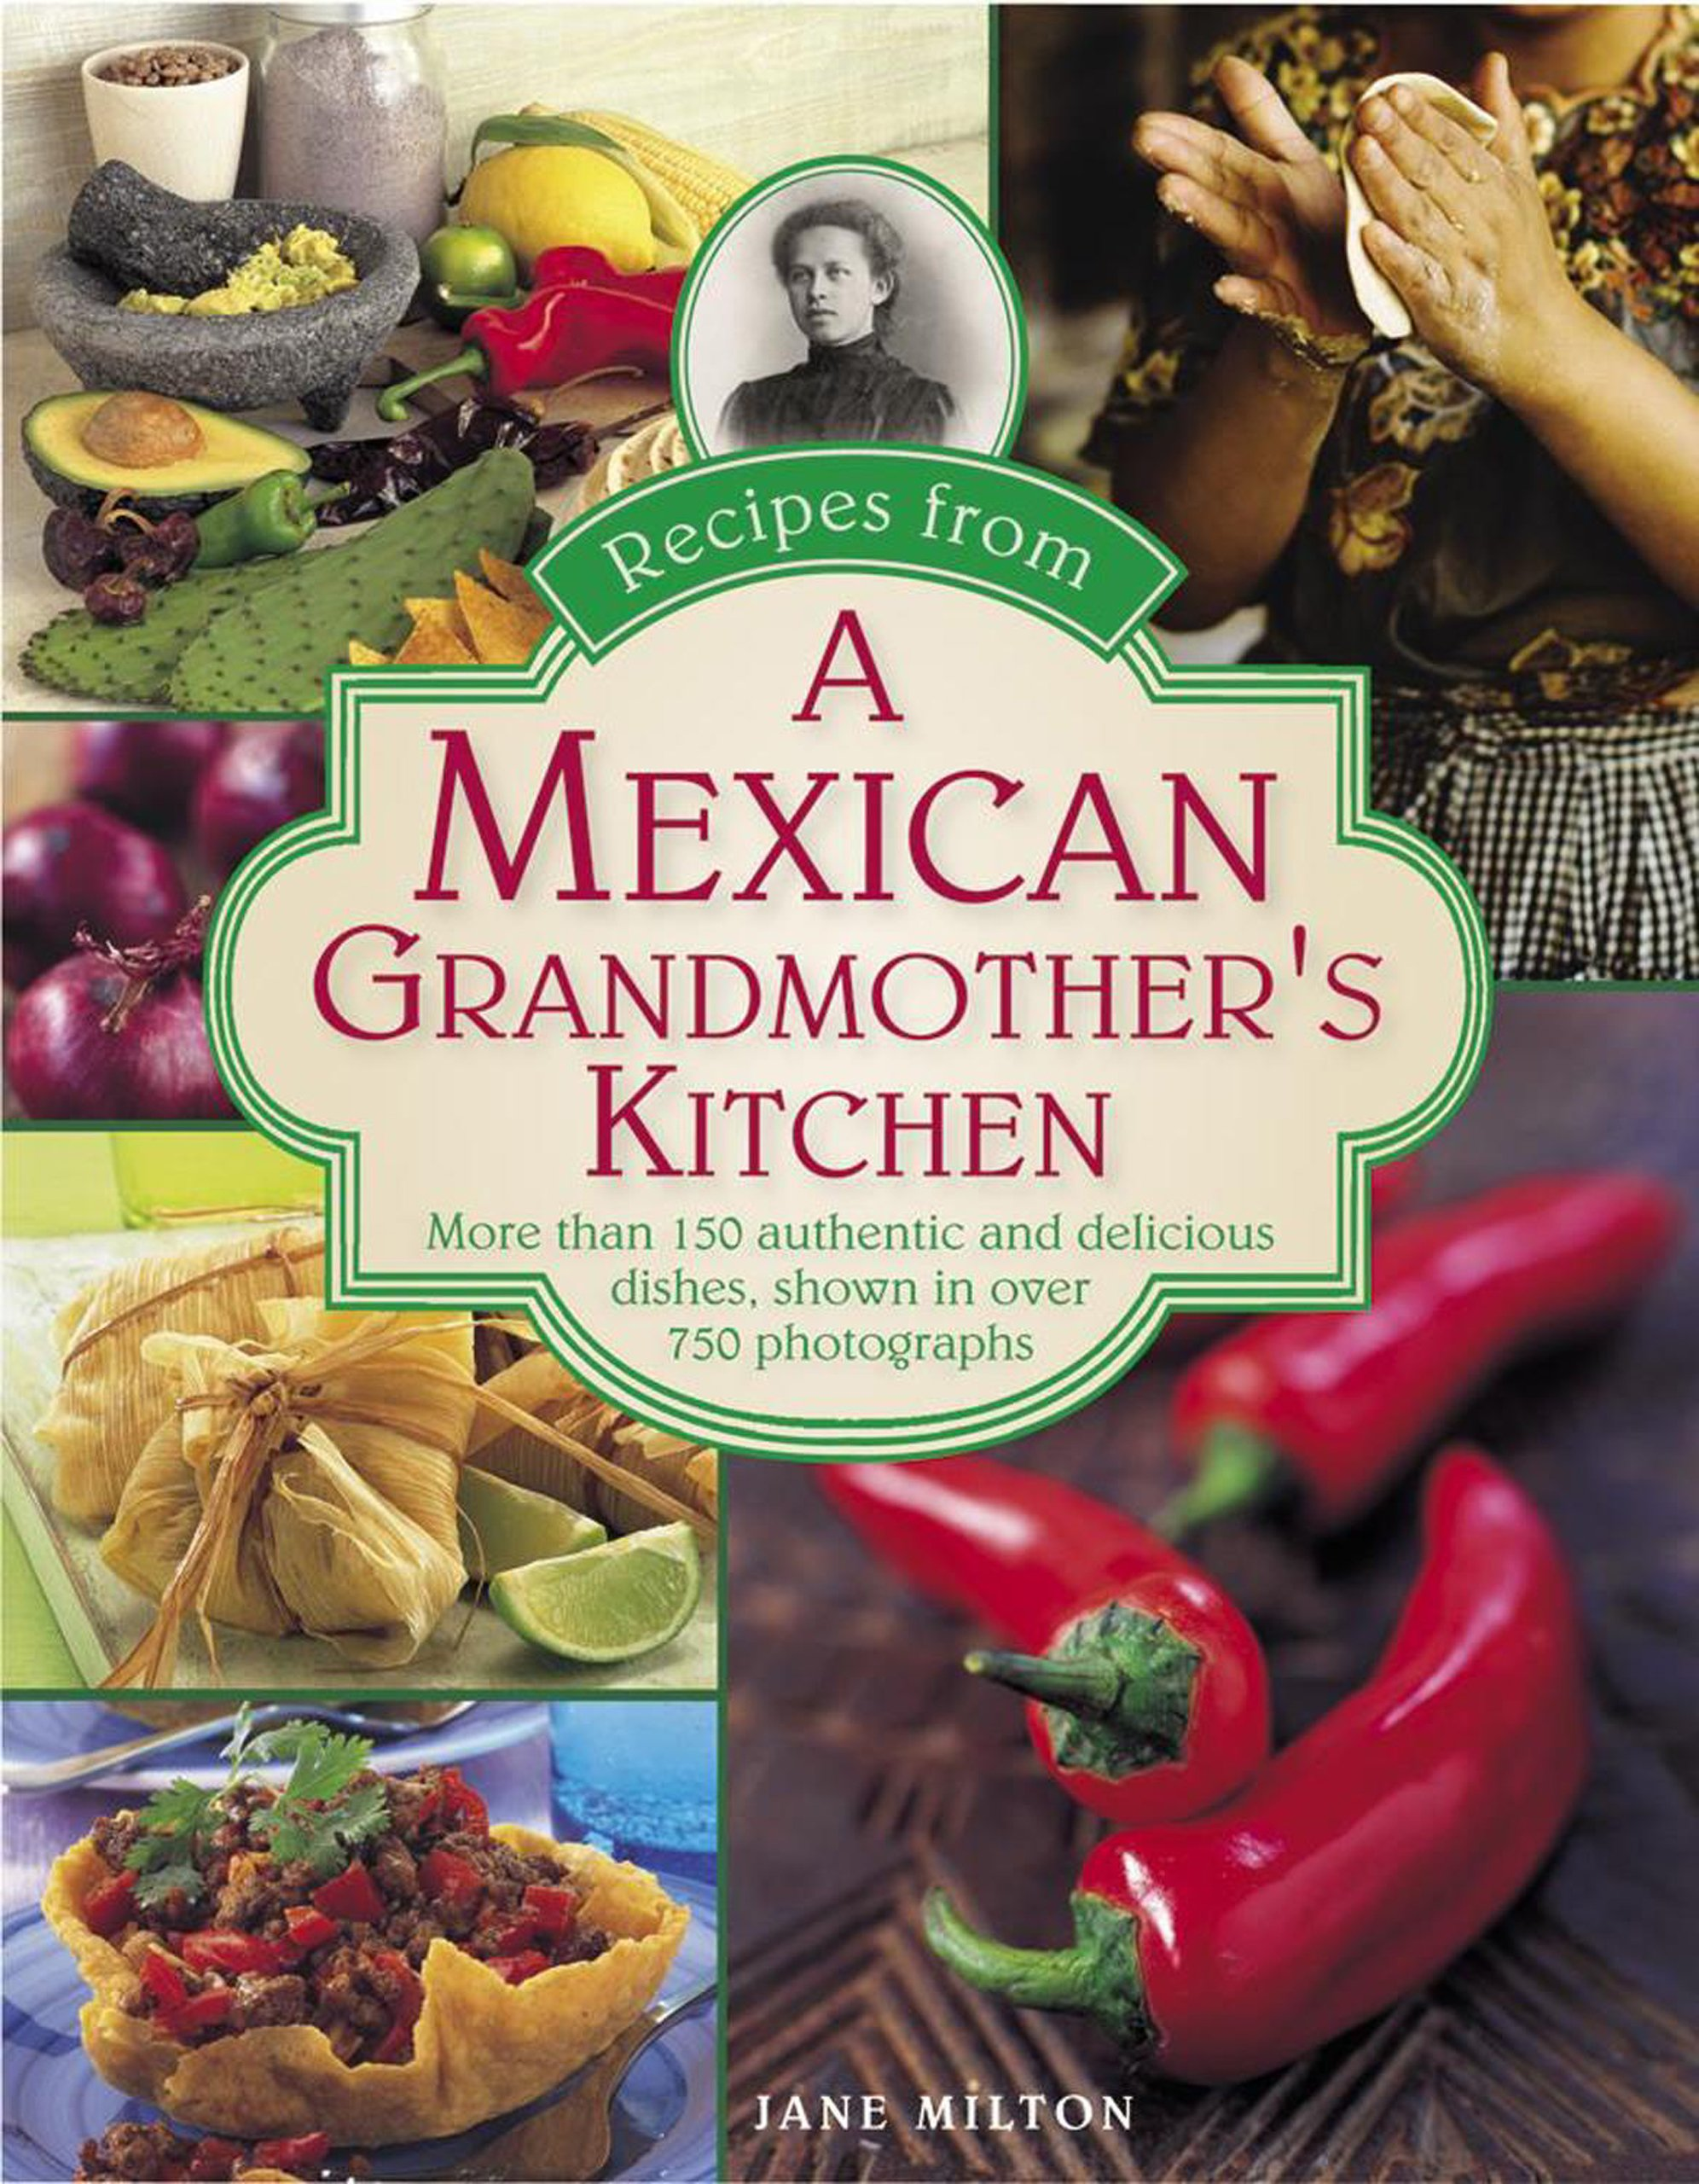 Recipes from a mexican grandmothers kitchen more than 150 recipes from a mexican grandmothers kitchen more than 150 authentic and delicious dishes shown in over 750 photographs jane milton 9780754829614 forumfinder Gallery